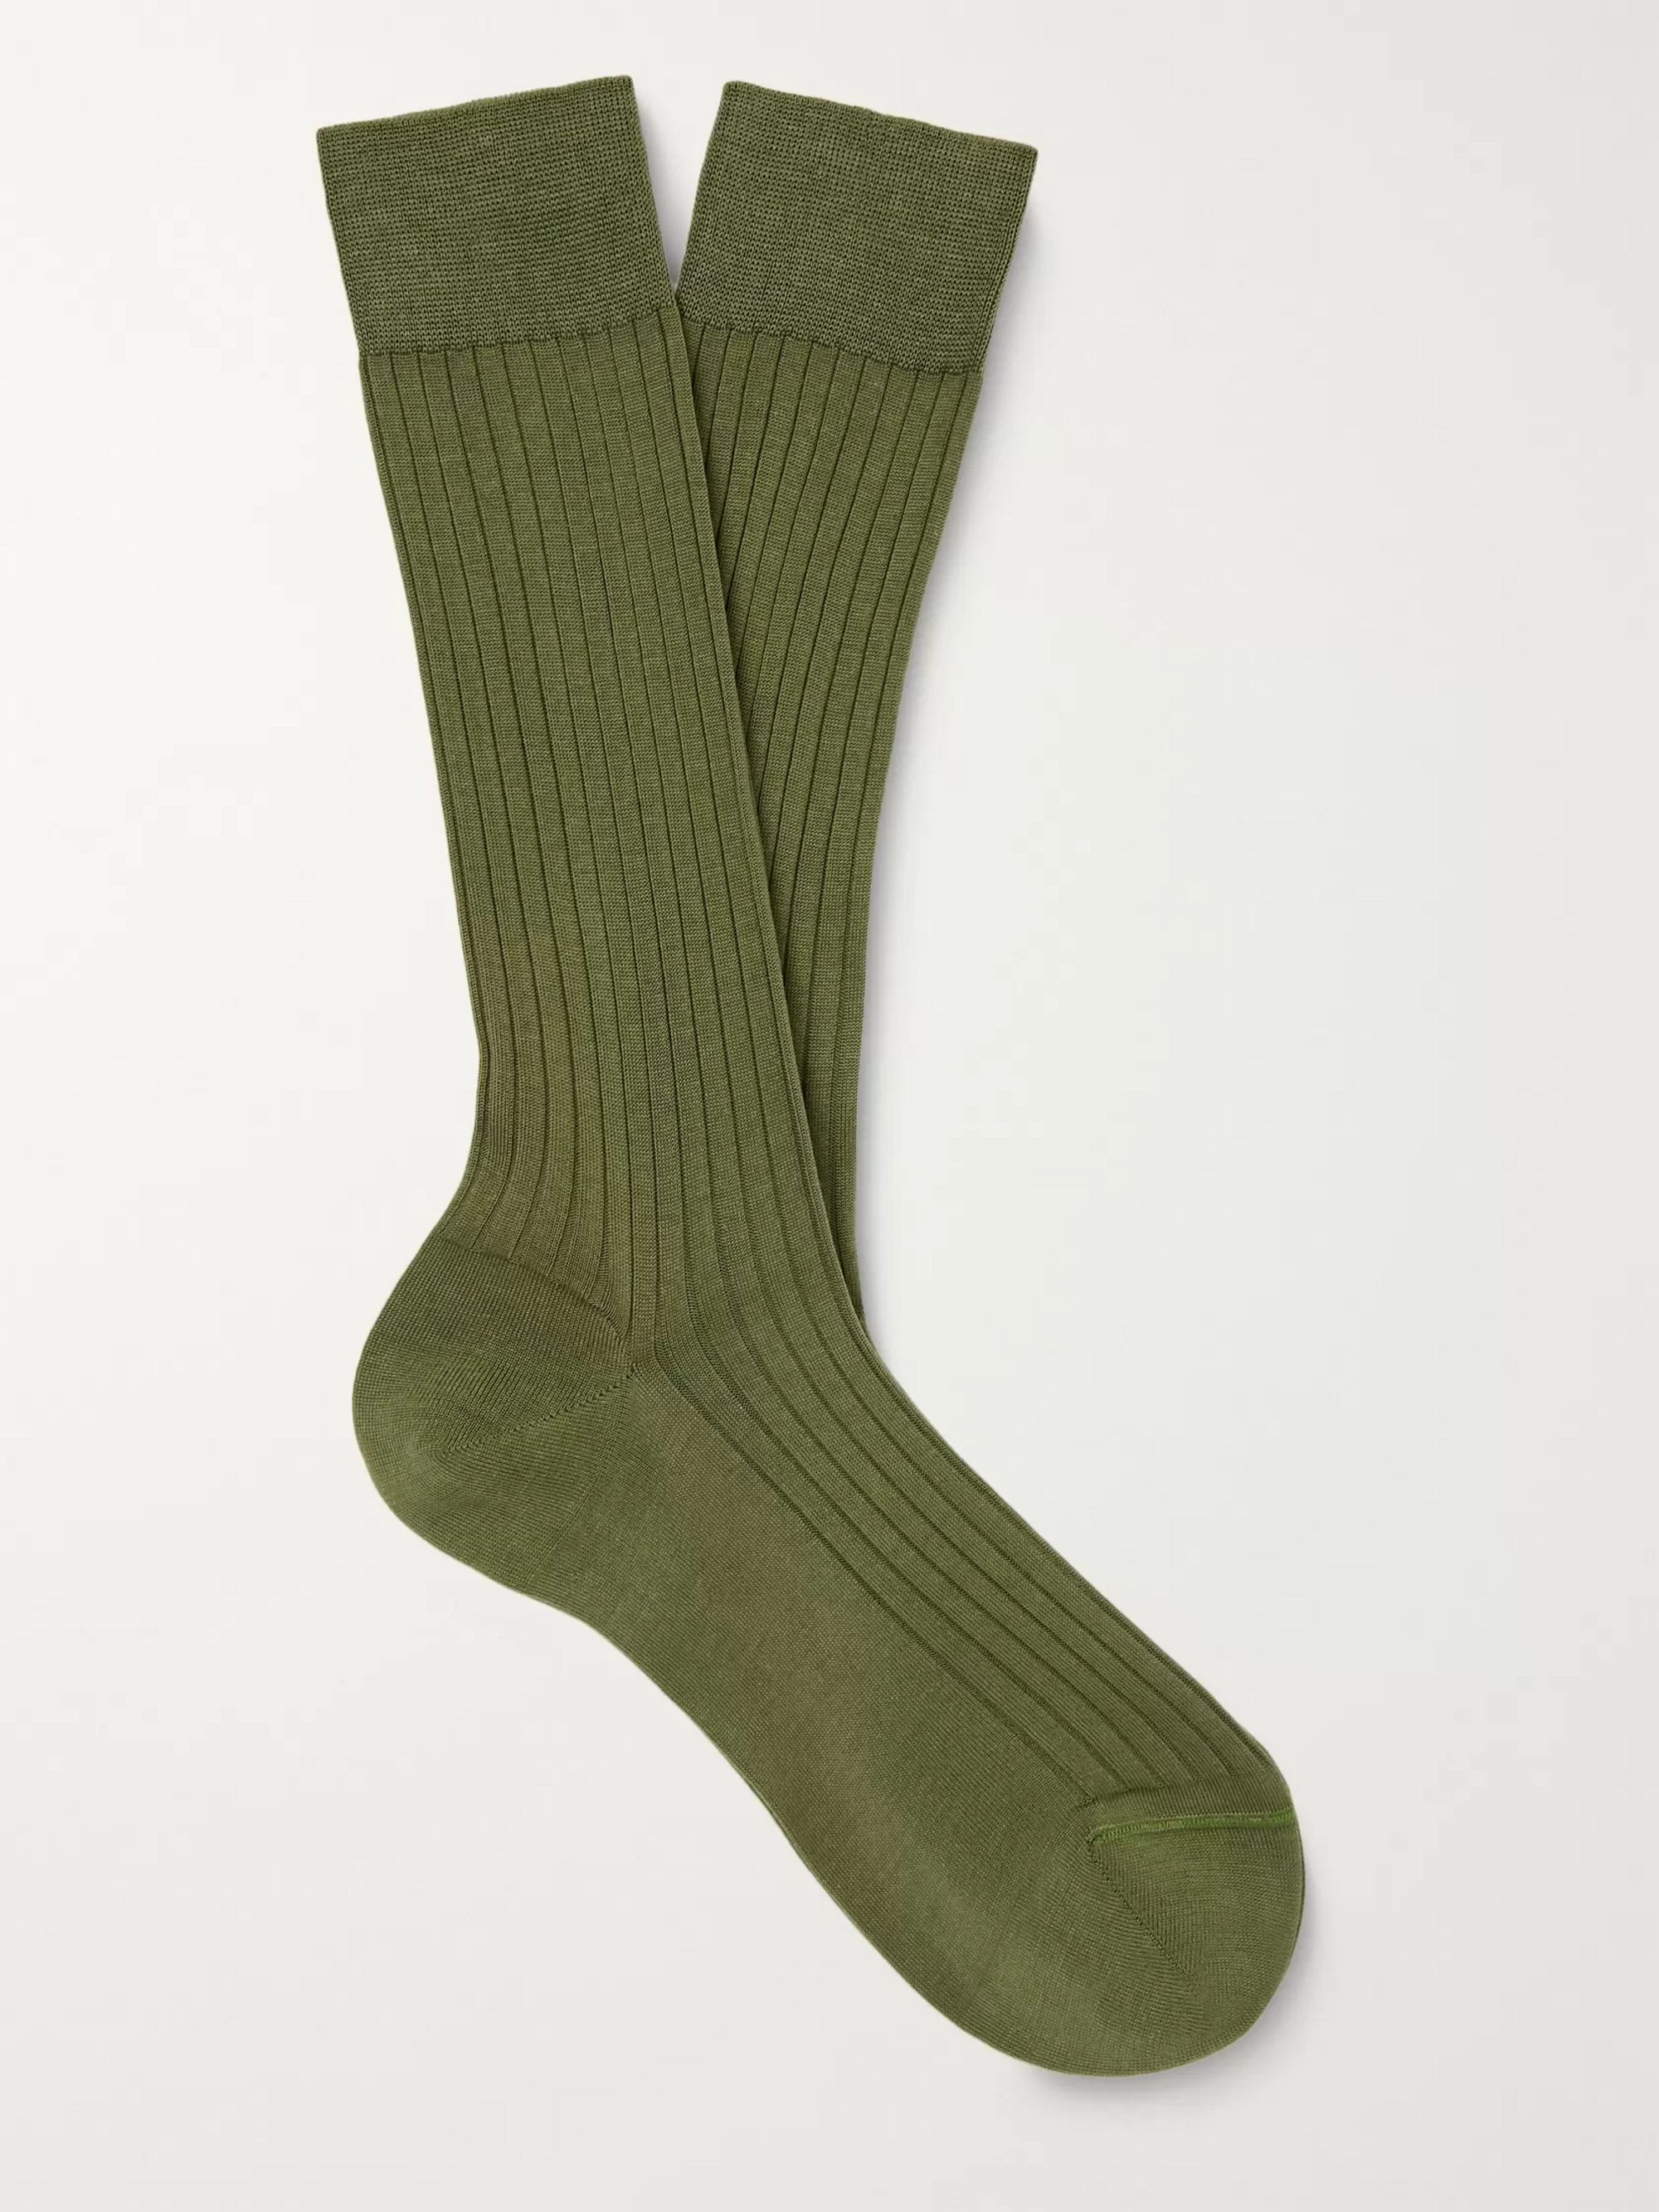 Army Green Ribbed Cotton Socks | Charvet